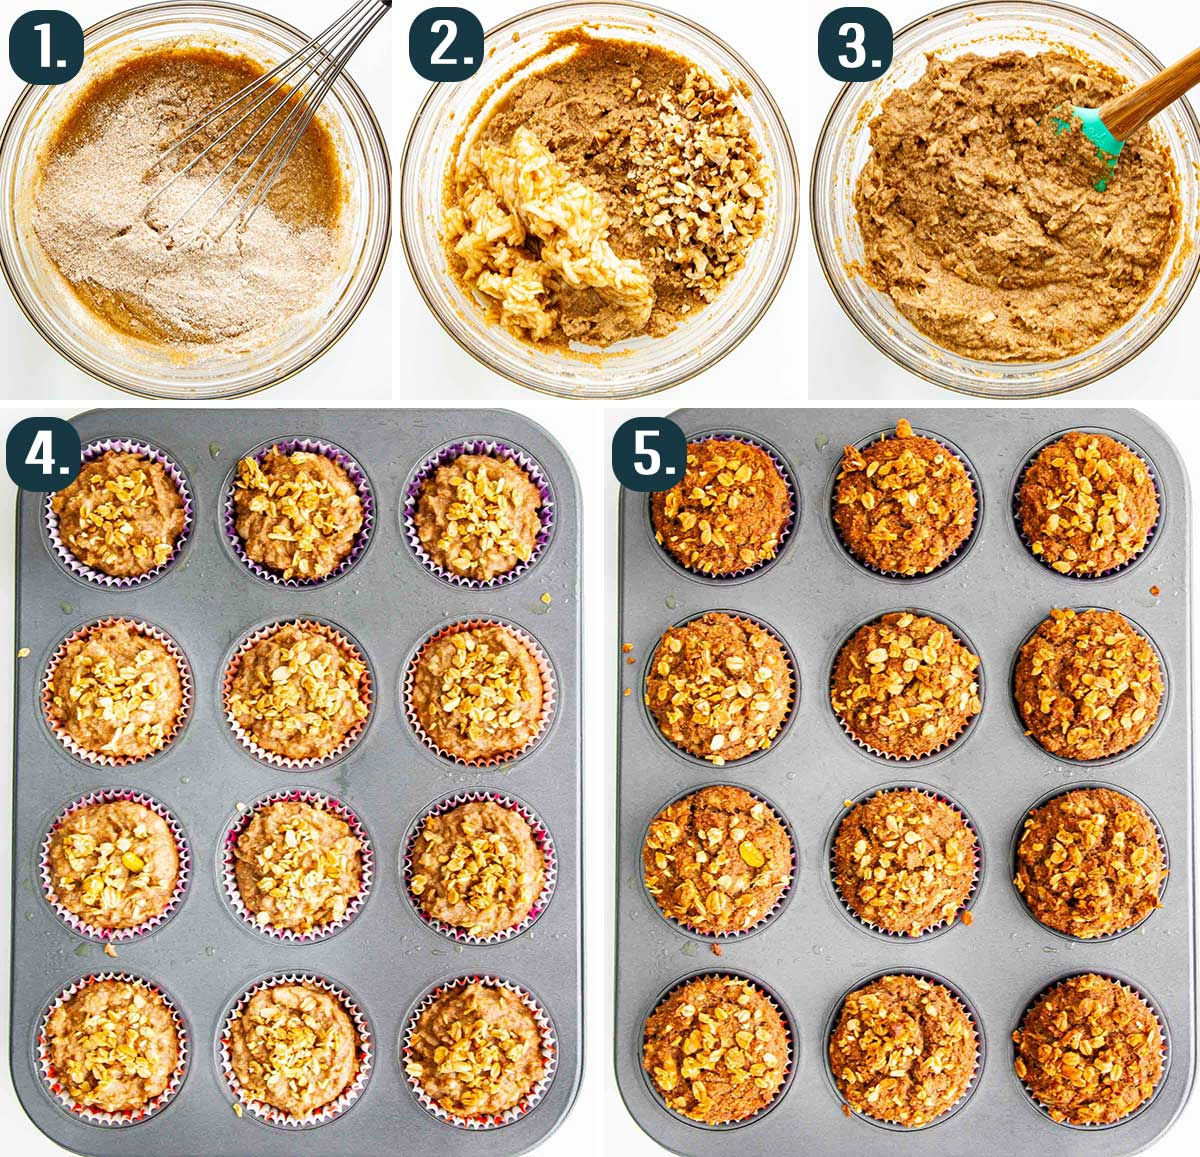 process shots showing how to make healthy apple muffins.